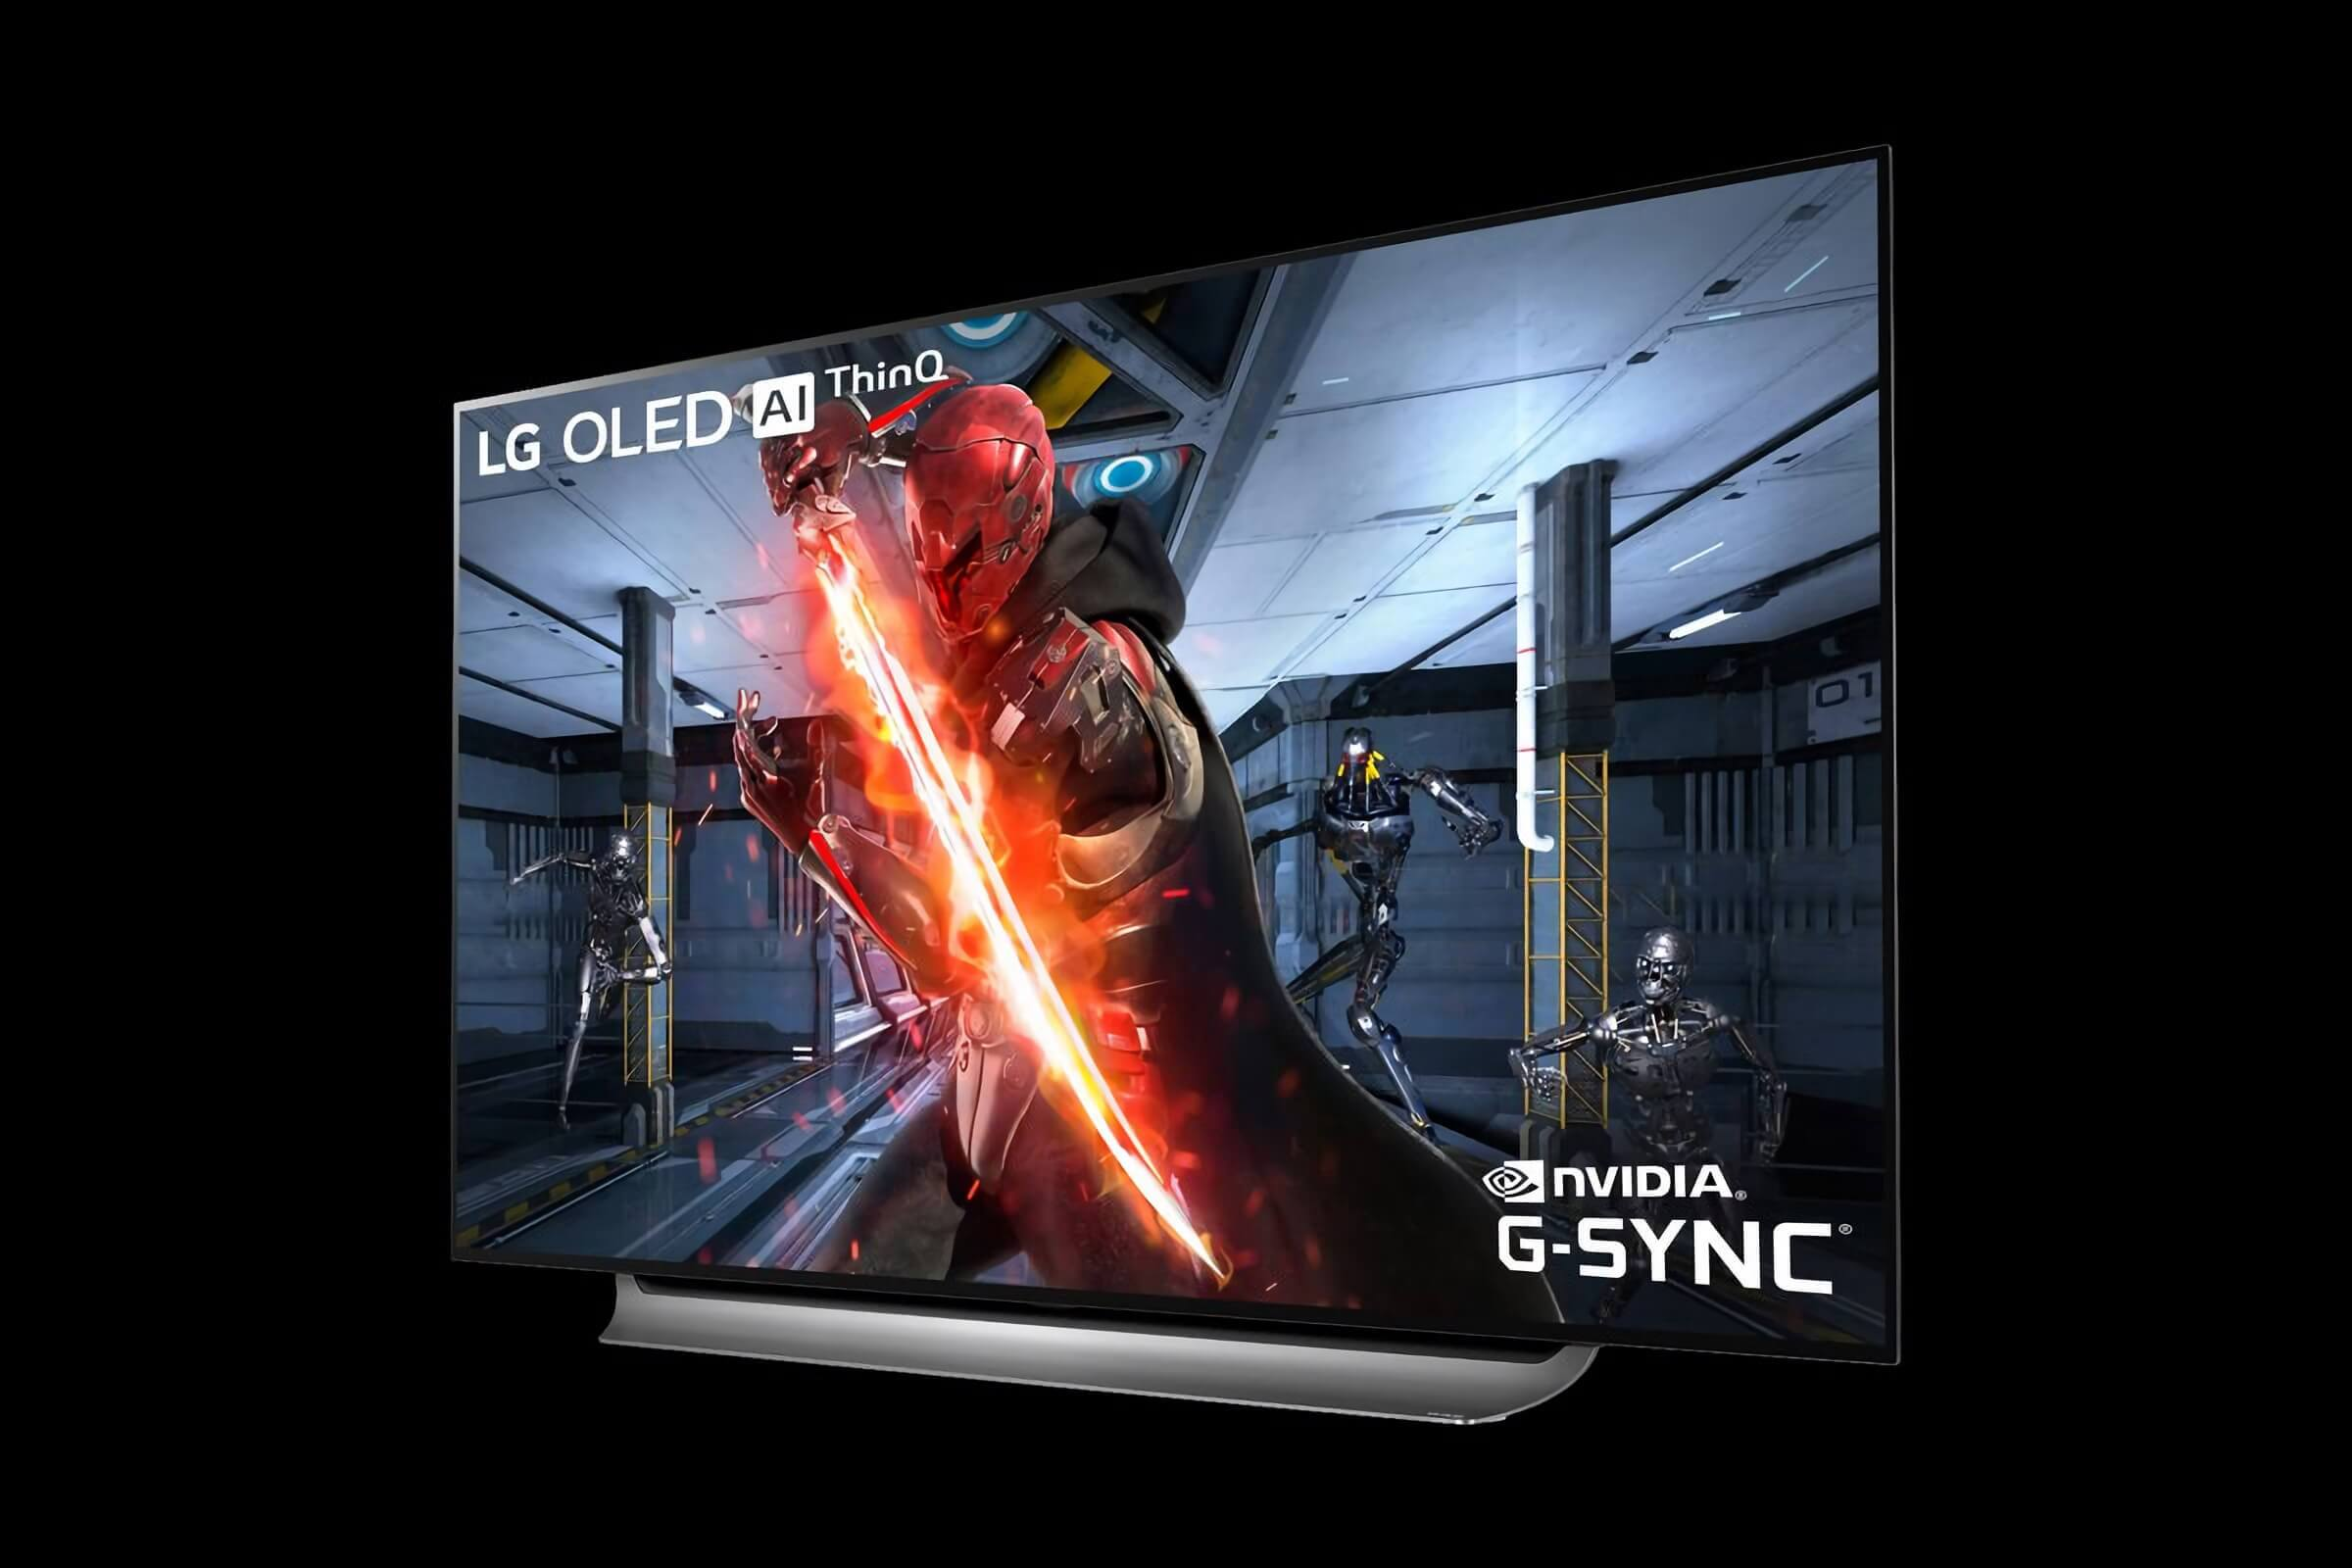 LG OLED TVs Get Nvidia G-Sync Gaming Update